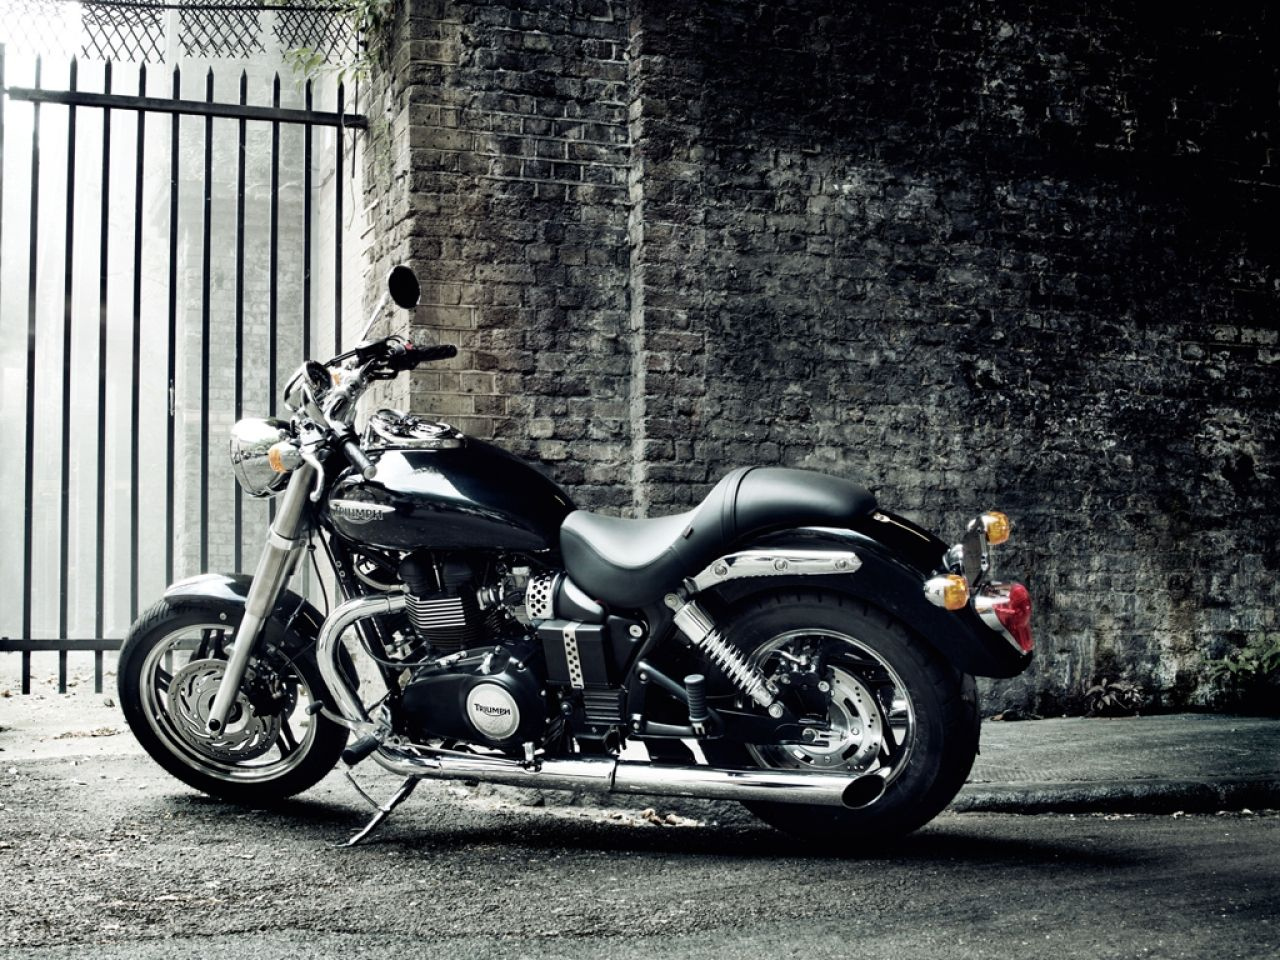 bmw motorcycles cruiser background 1 hd wallpapers   motorcycles